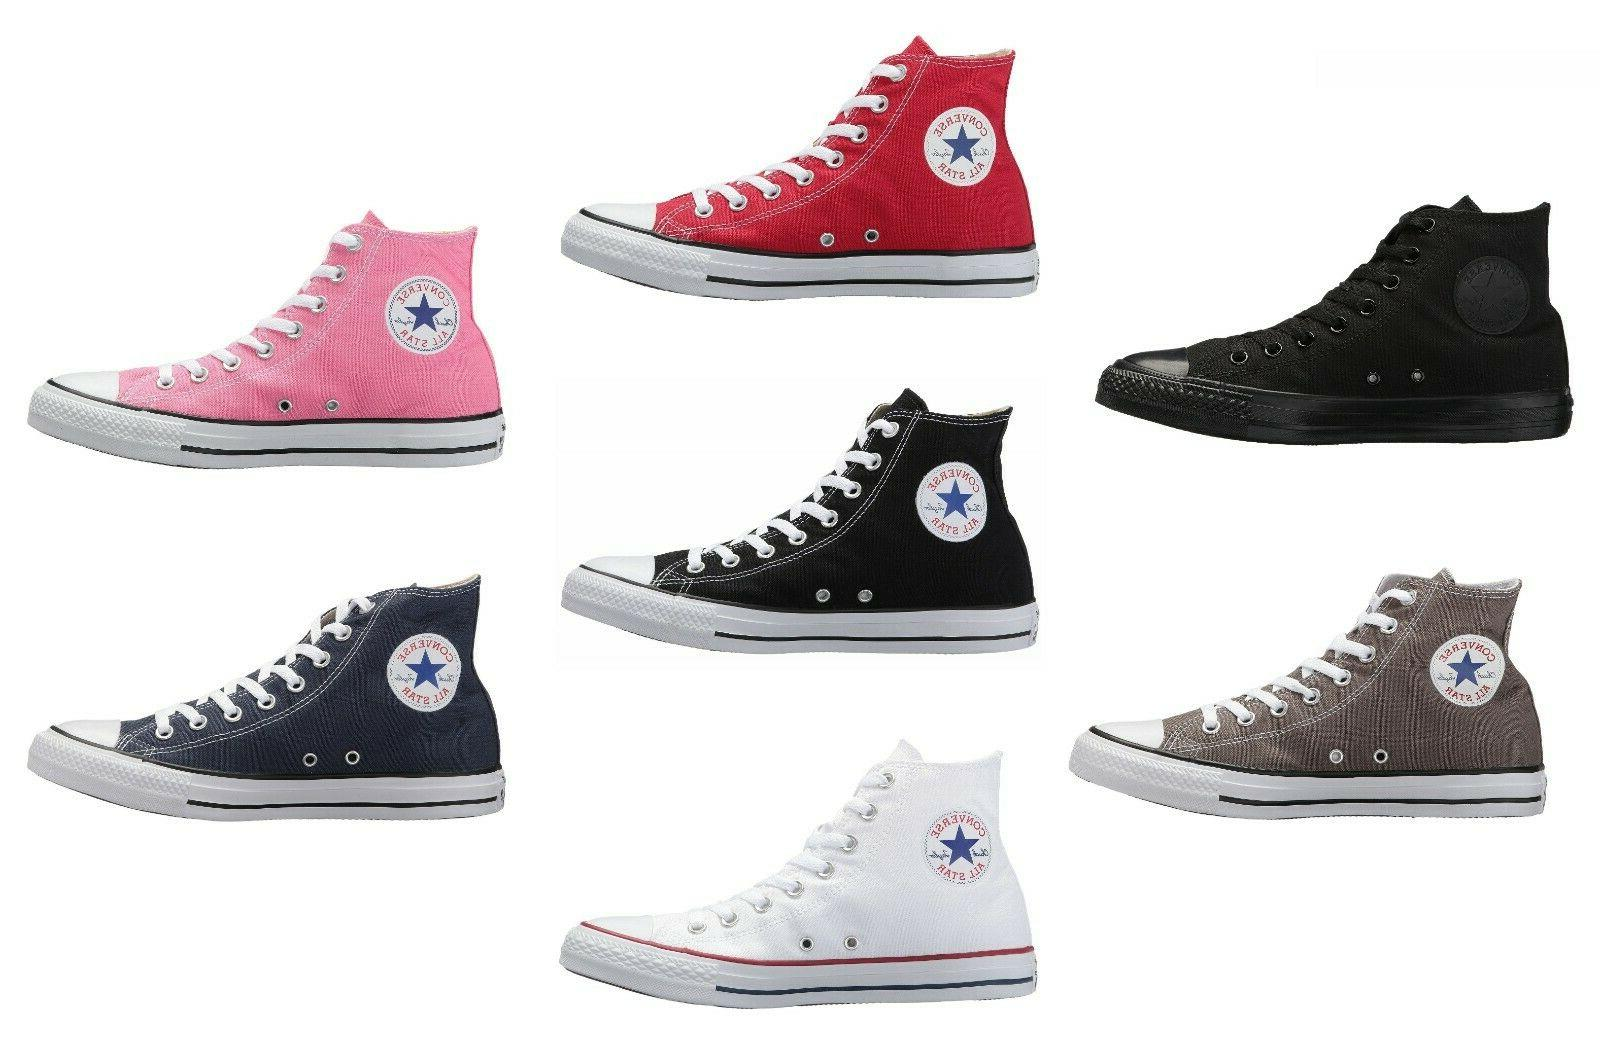 unisex chuck taylor all star high top